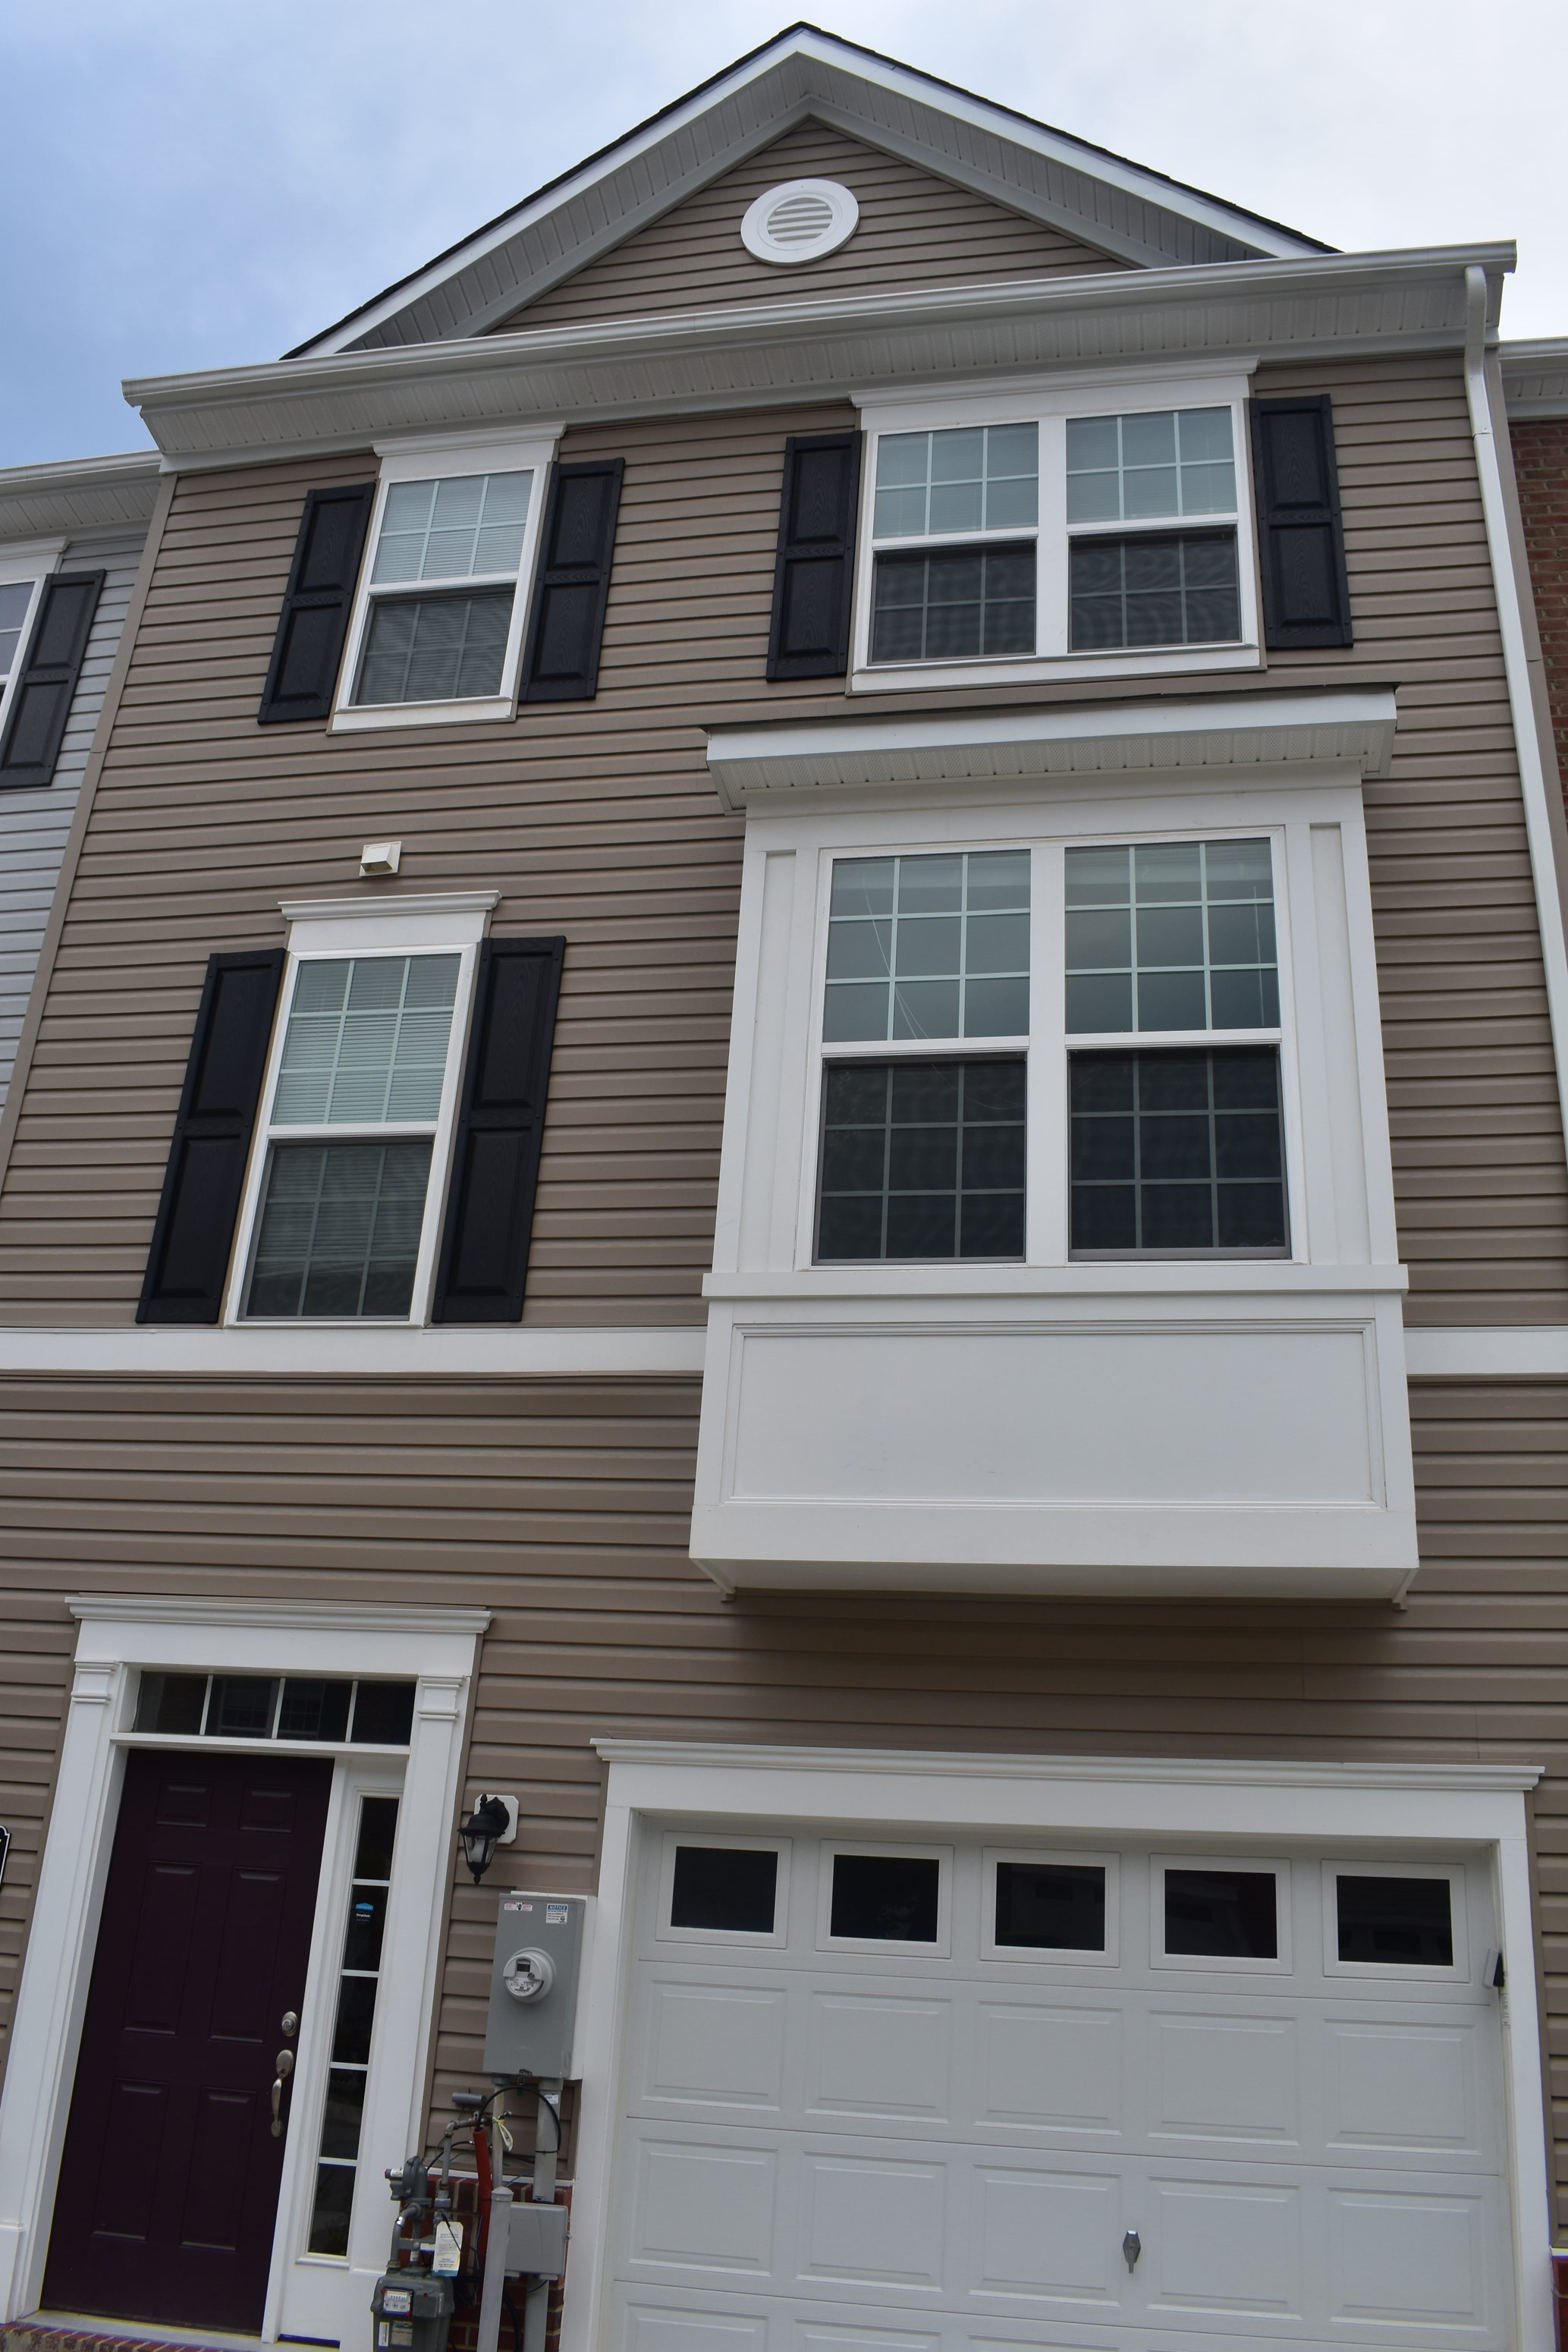 Rooms for Rent Elkridge, MD – Apartments, House, Commercial